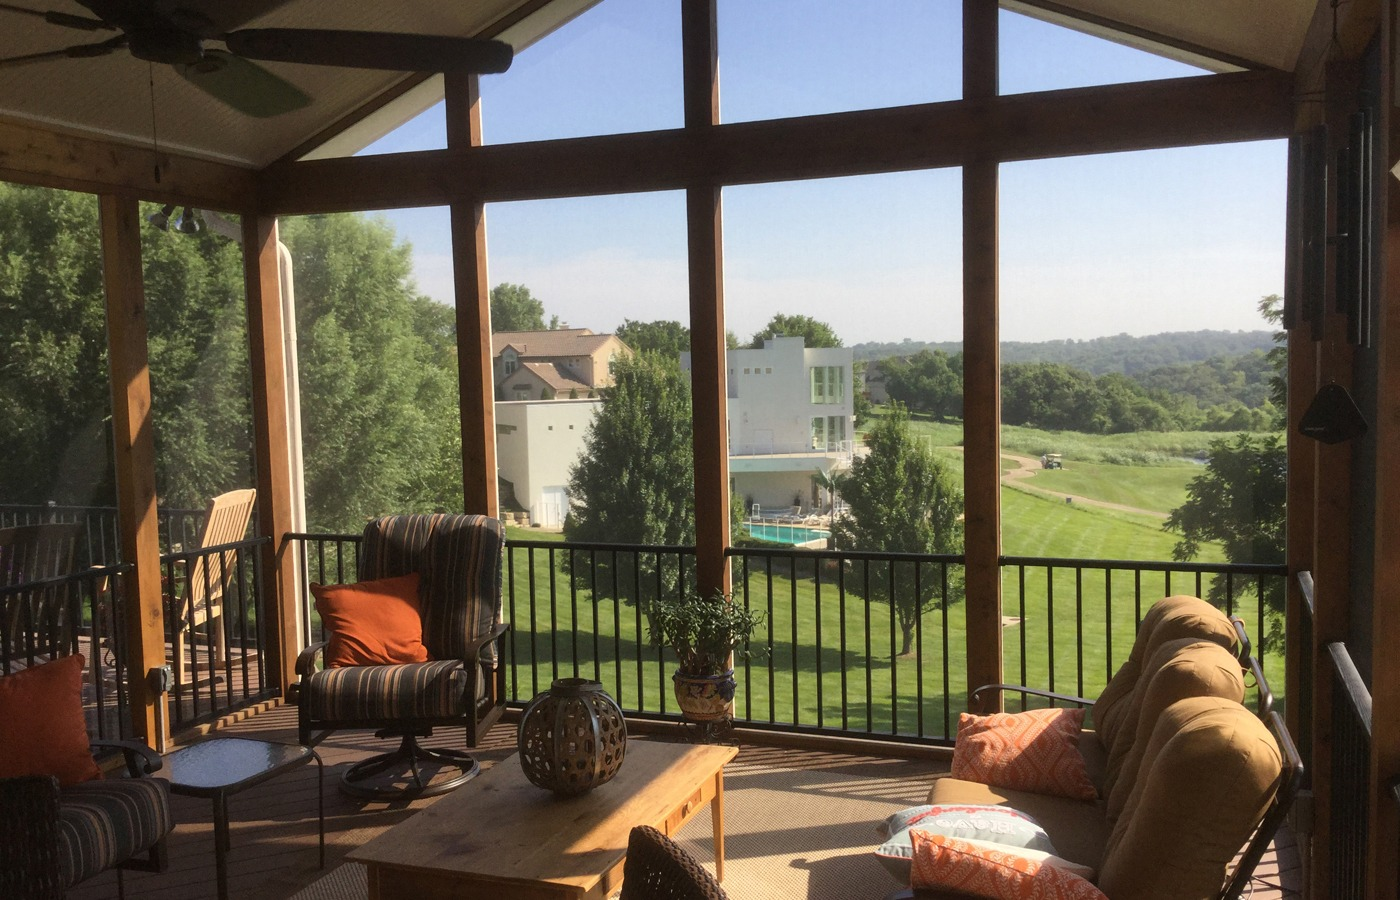 Top 7 Most Stunning Enclosed Patio Designs and Their Costs ... on Inclosed Patio Ideas  id=41982